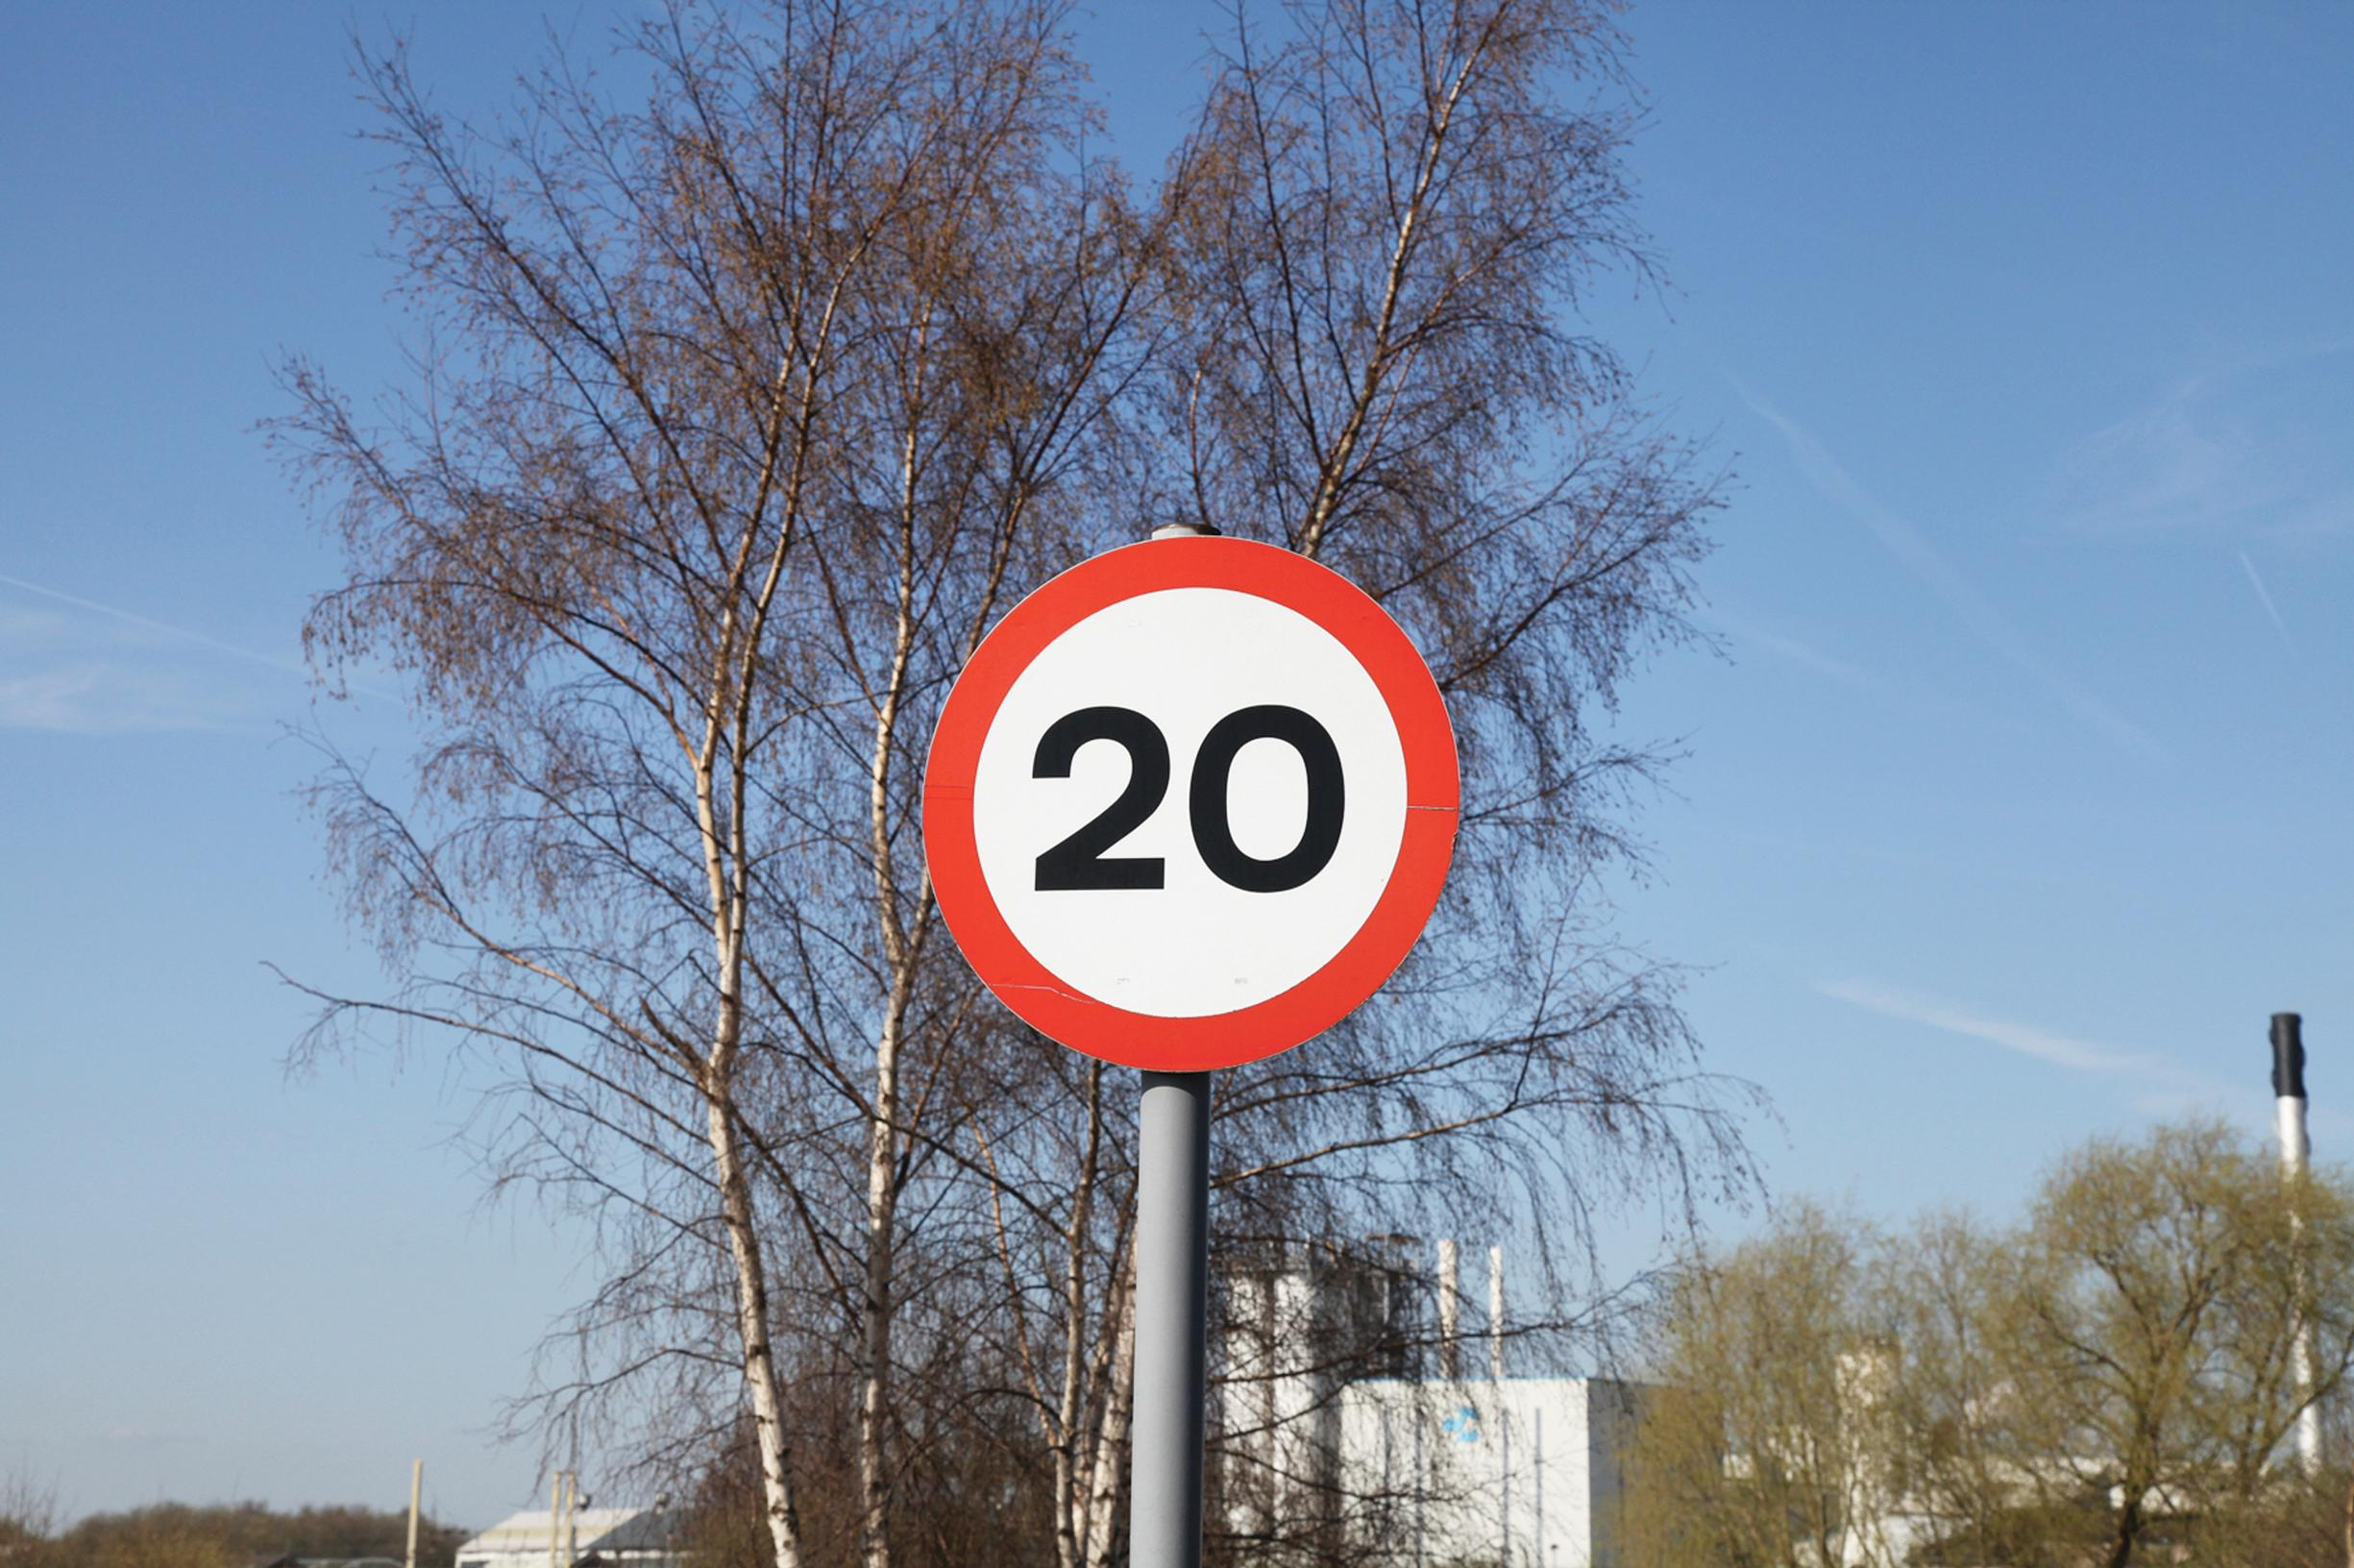 Bristol reviews 20mph limits, as research finds speed drop